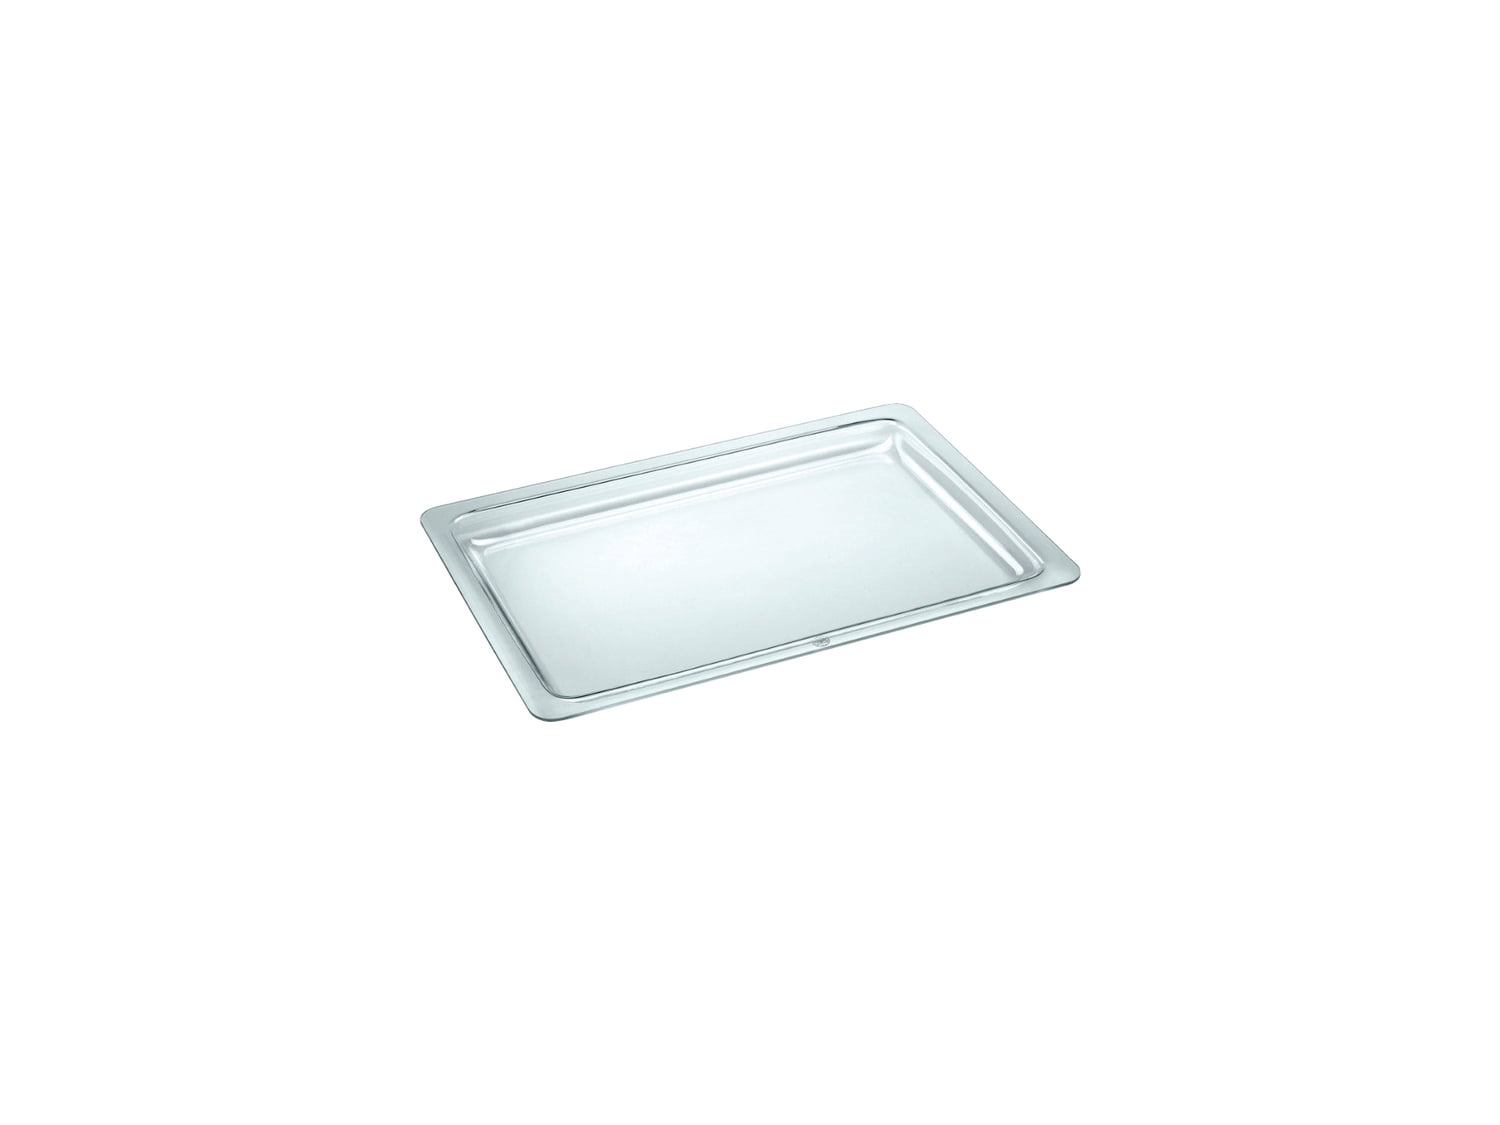 Load image into Gallery viewer, Bertazzoni 901273 Glass Tray Glass